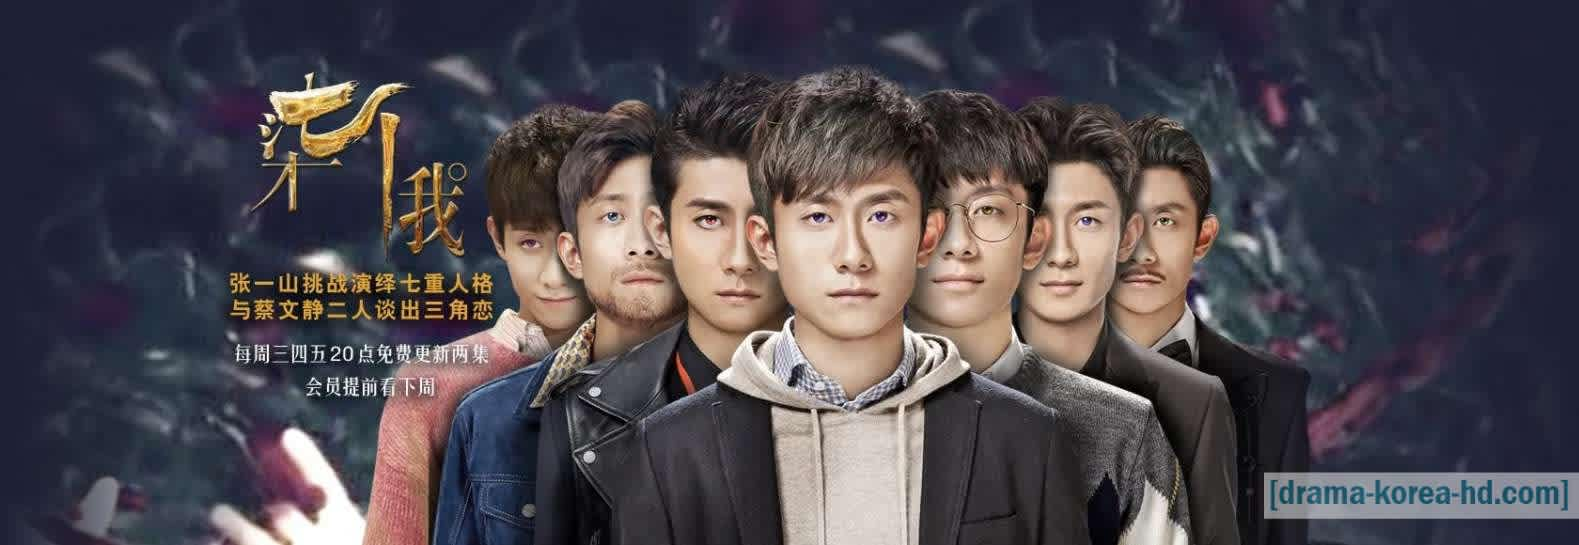 A Seven-Faced Man Full Episode drama korea